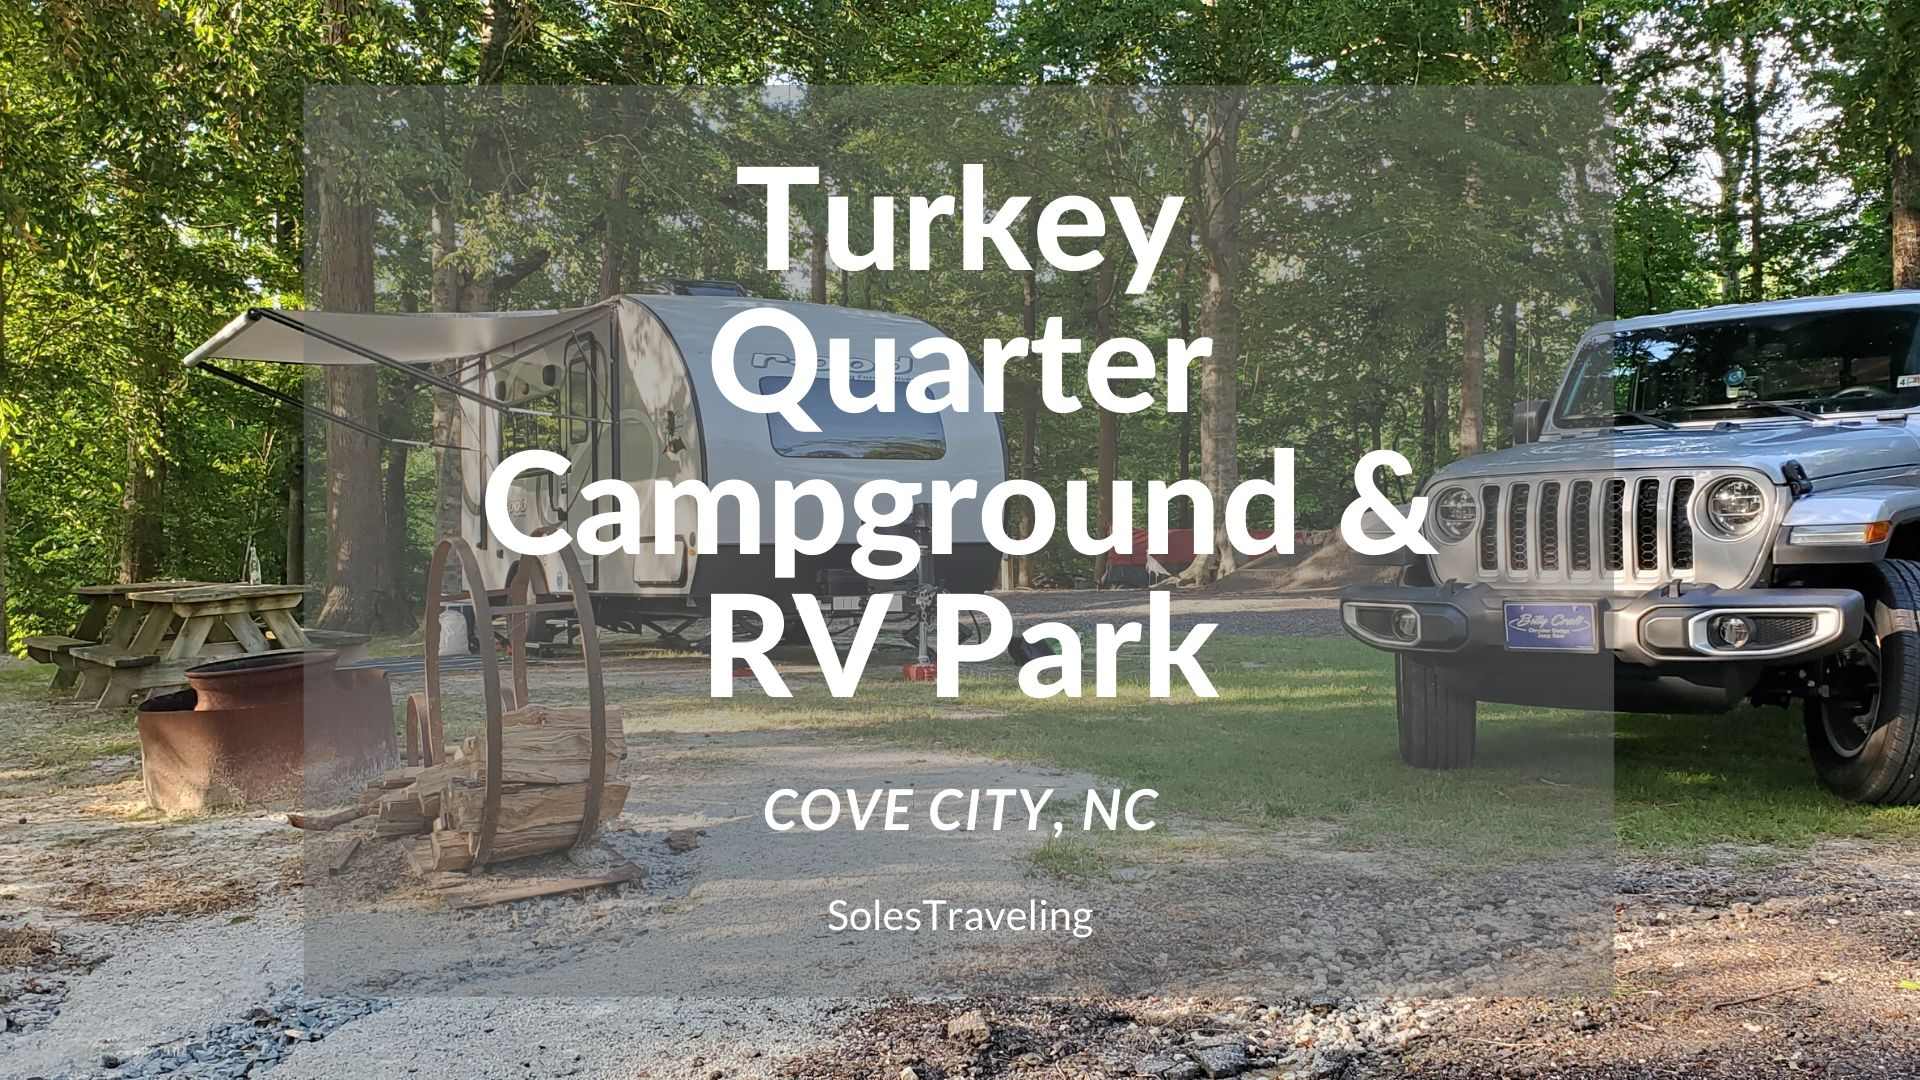 turkey quarter campground